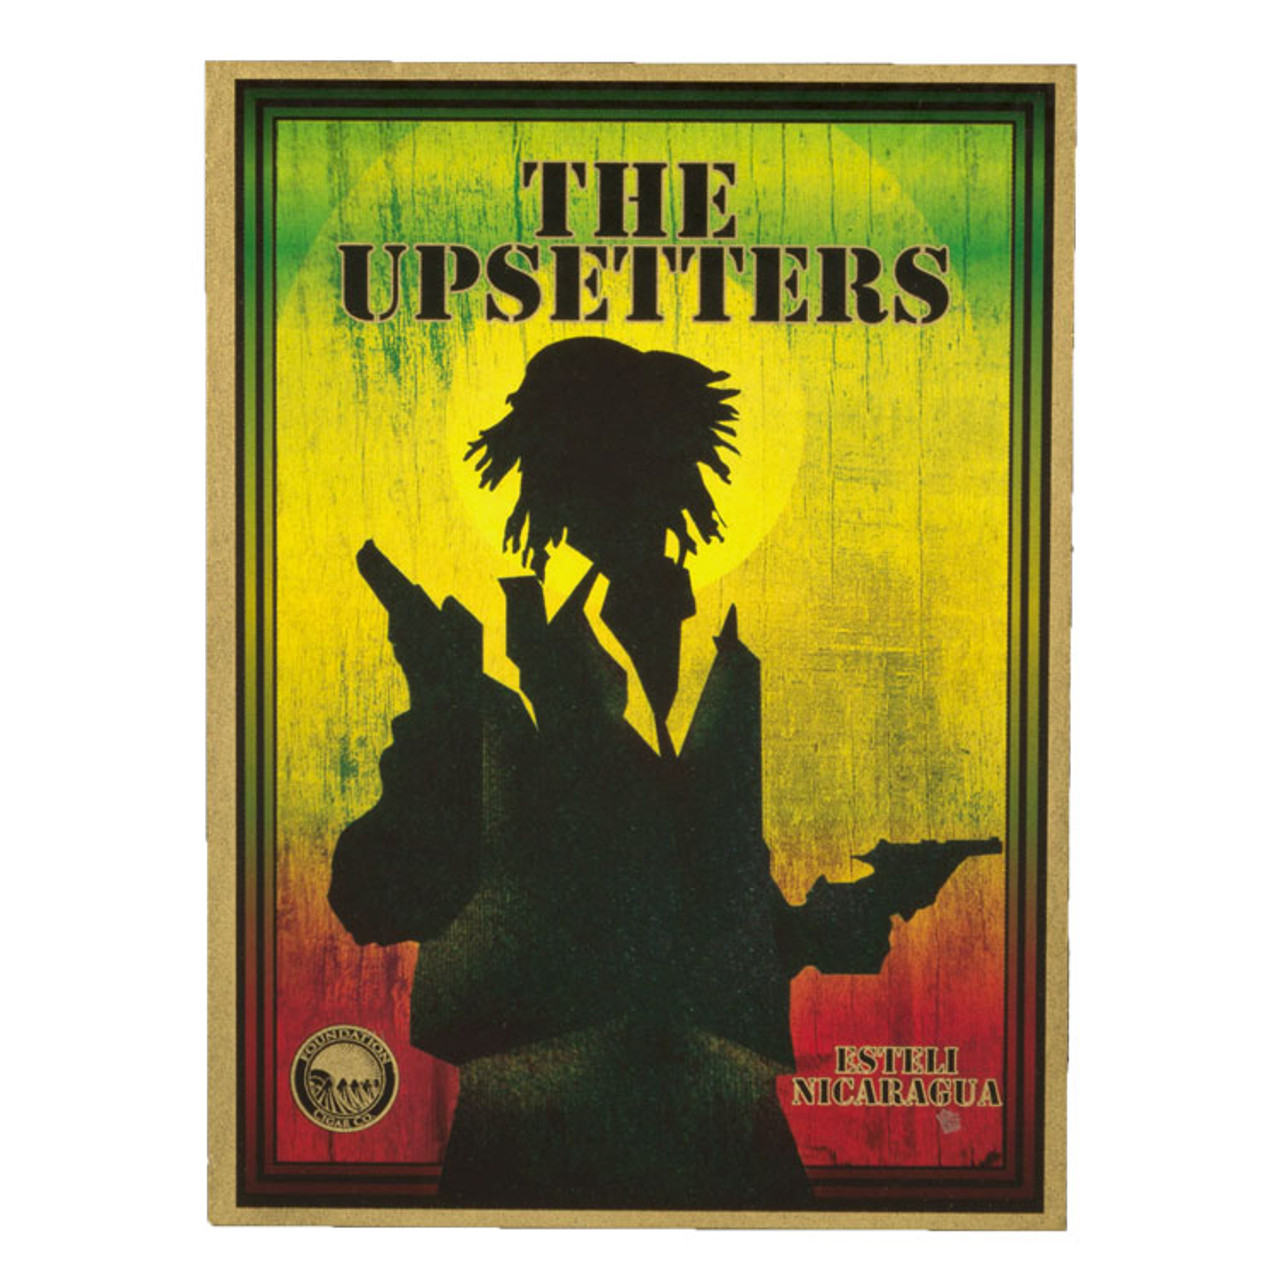 Foundation The Upsetters Para El Sapo Cigars - 4.5 x 54 (Box of 20)